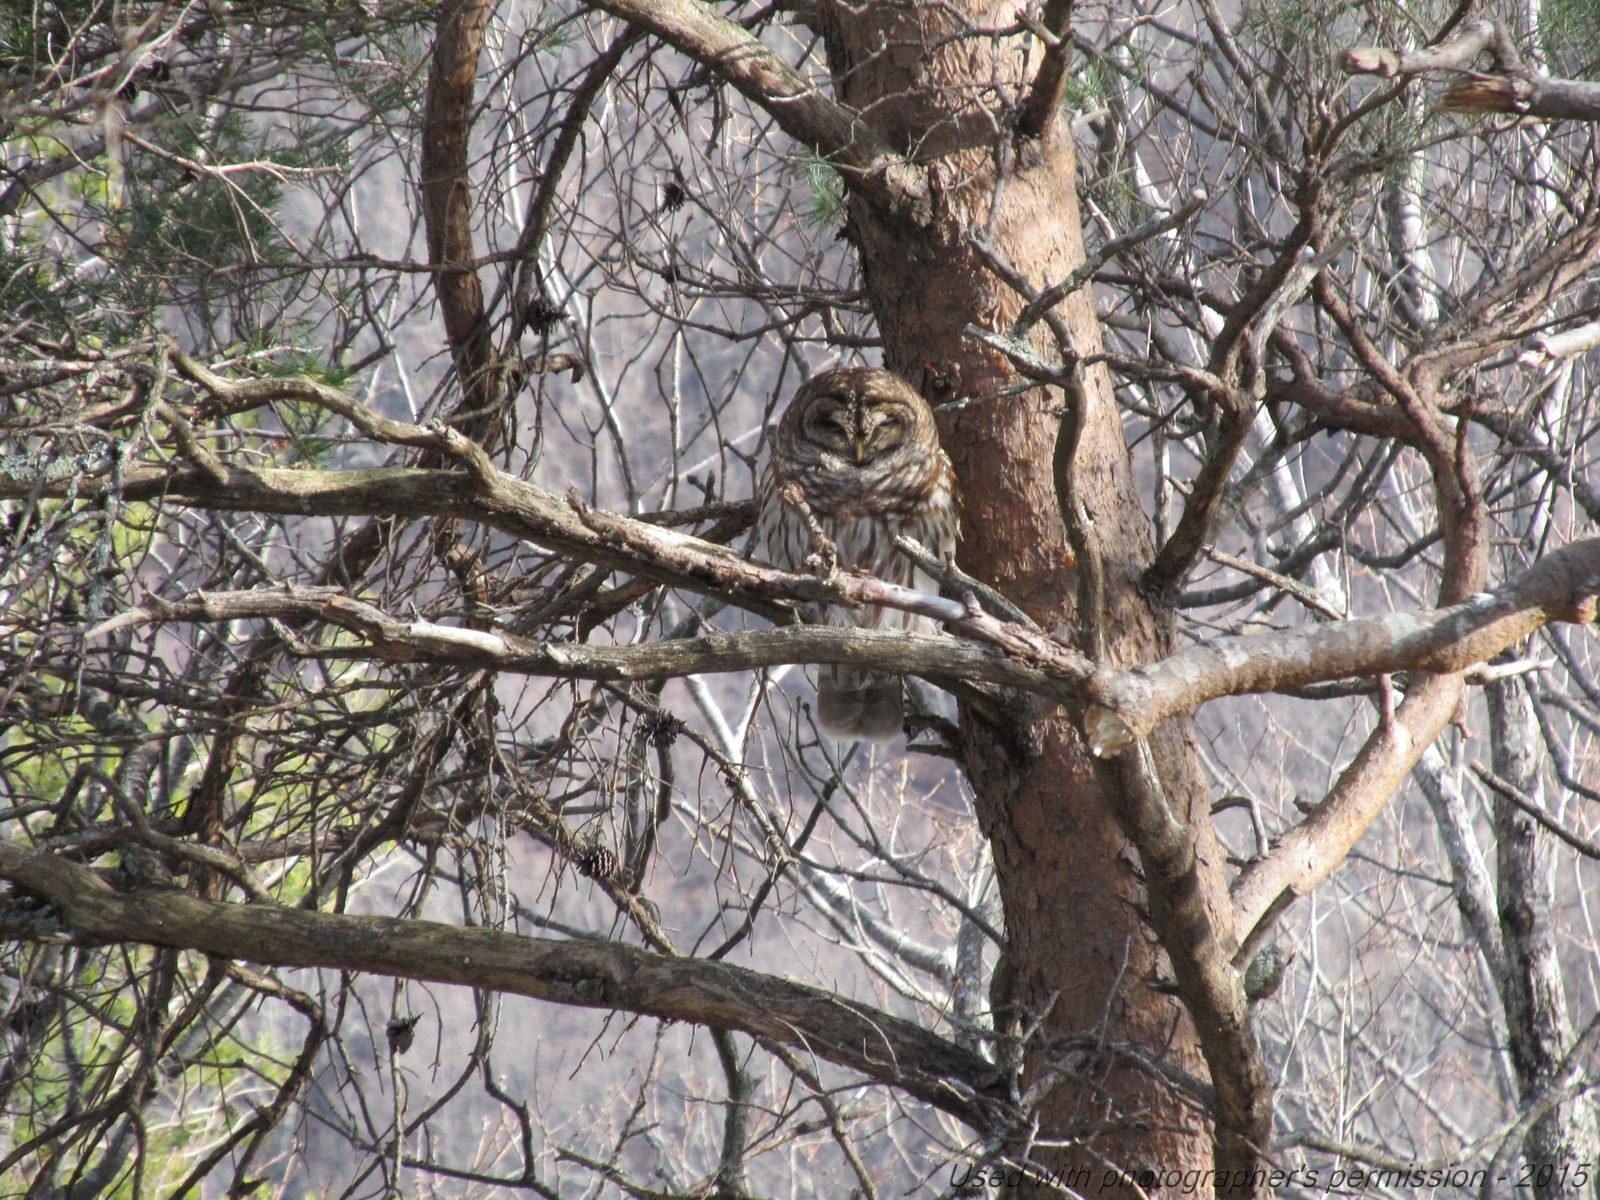 February 20, 2015 - Barred Owl in Bent Tree